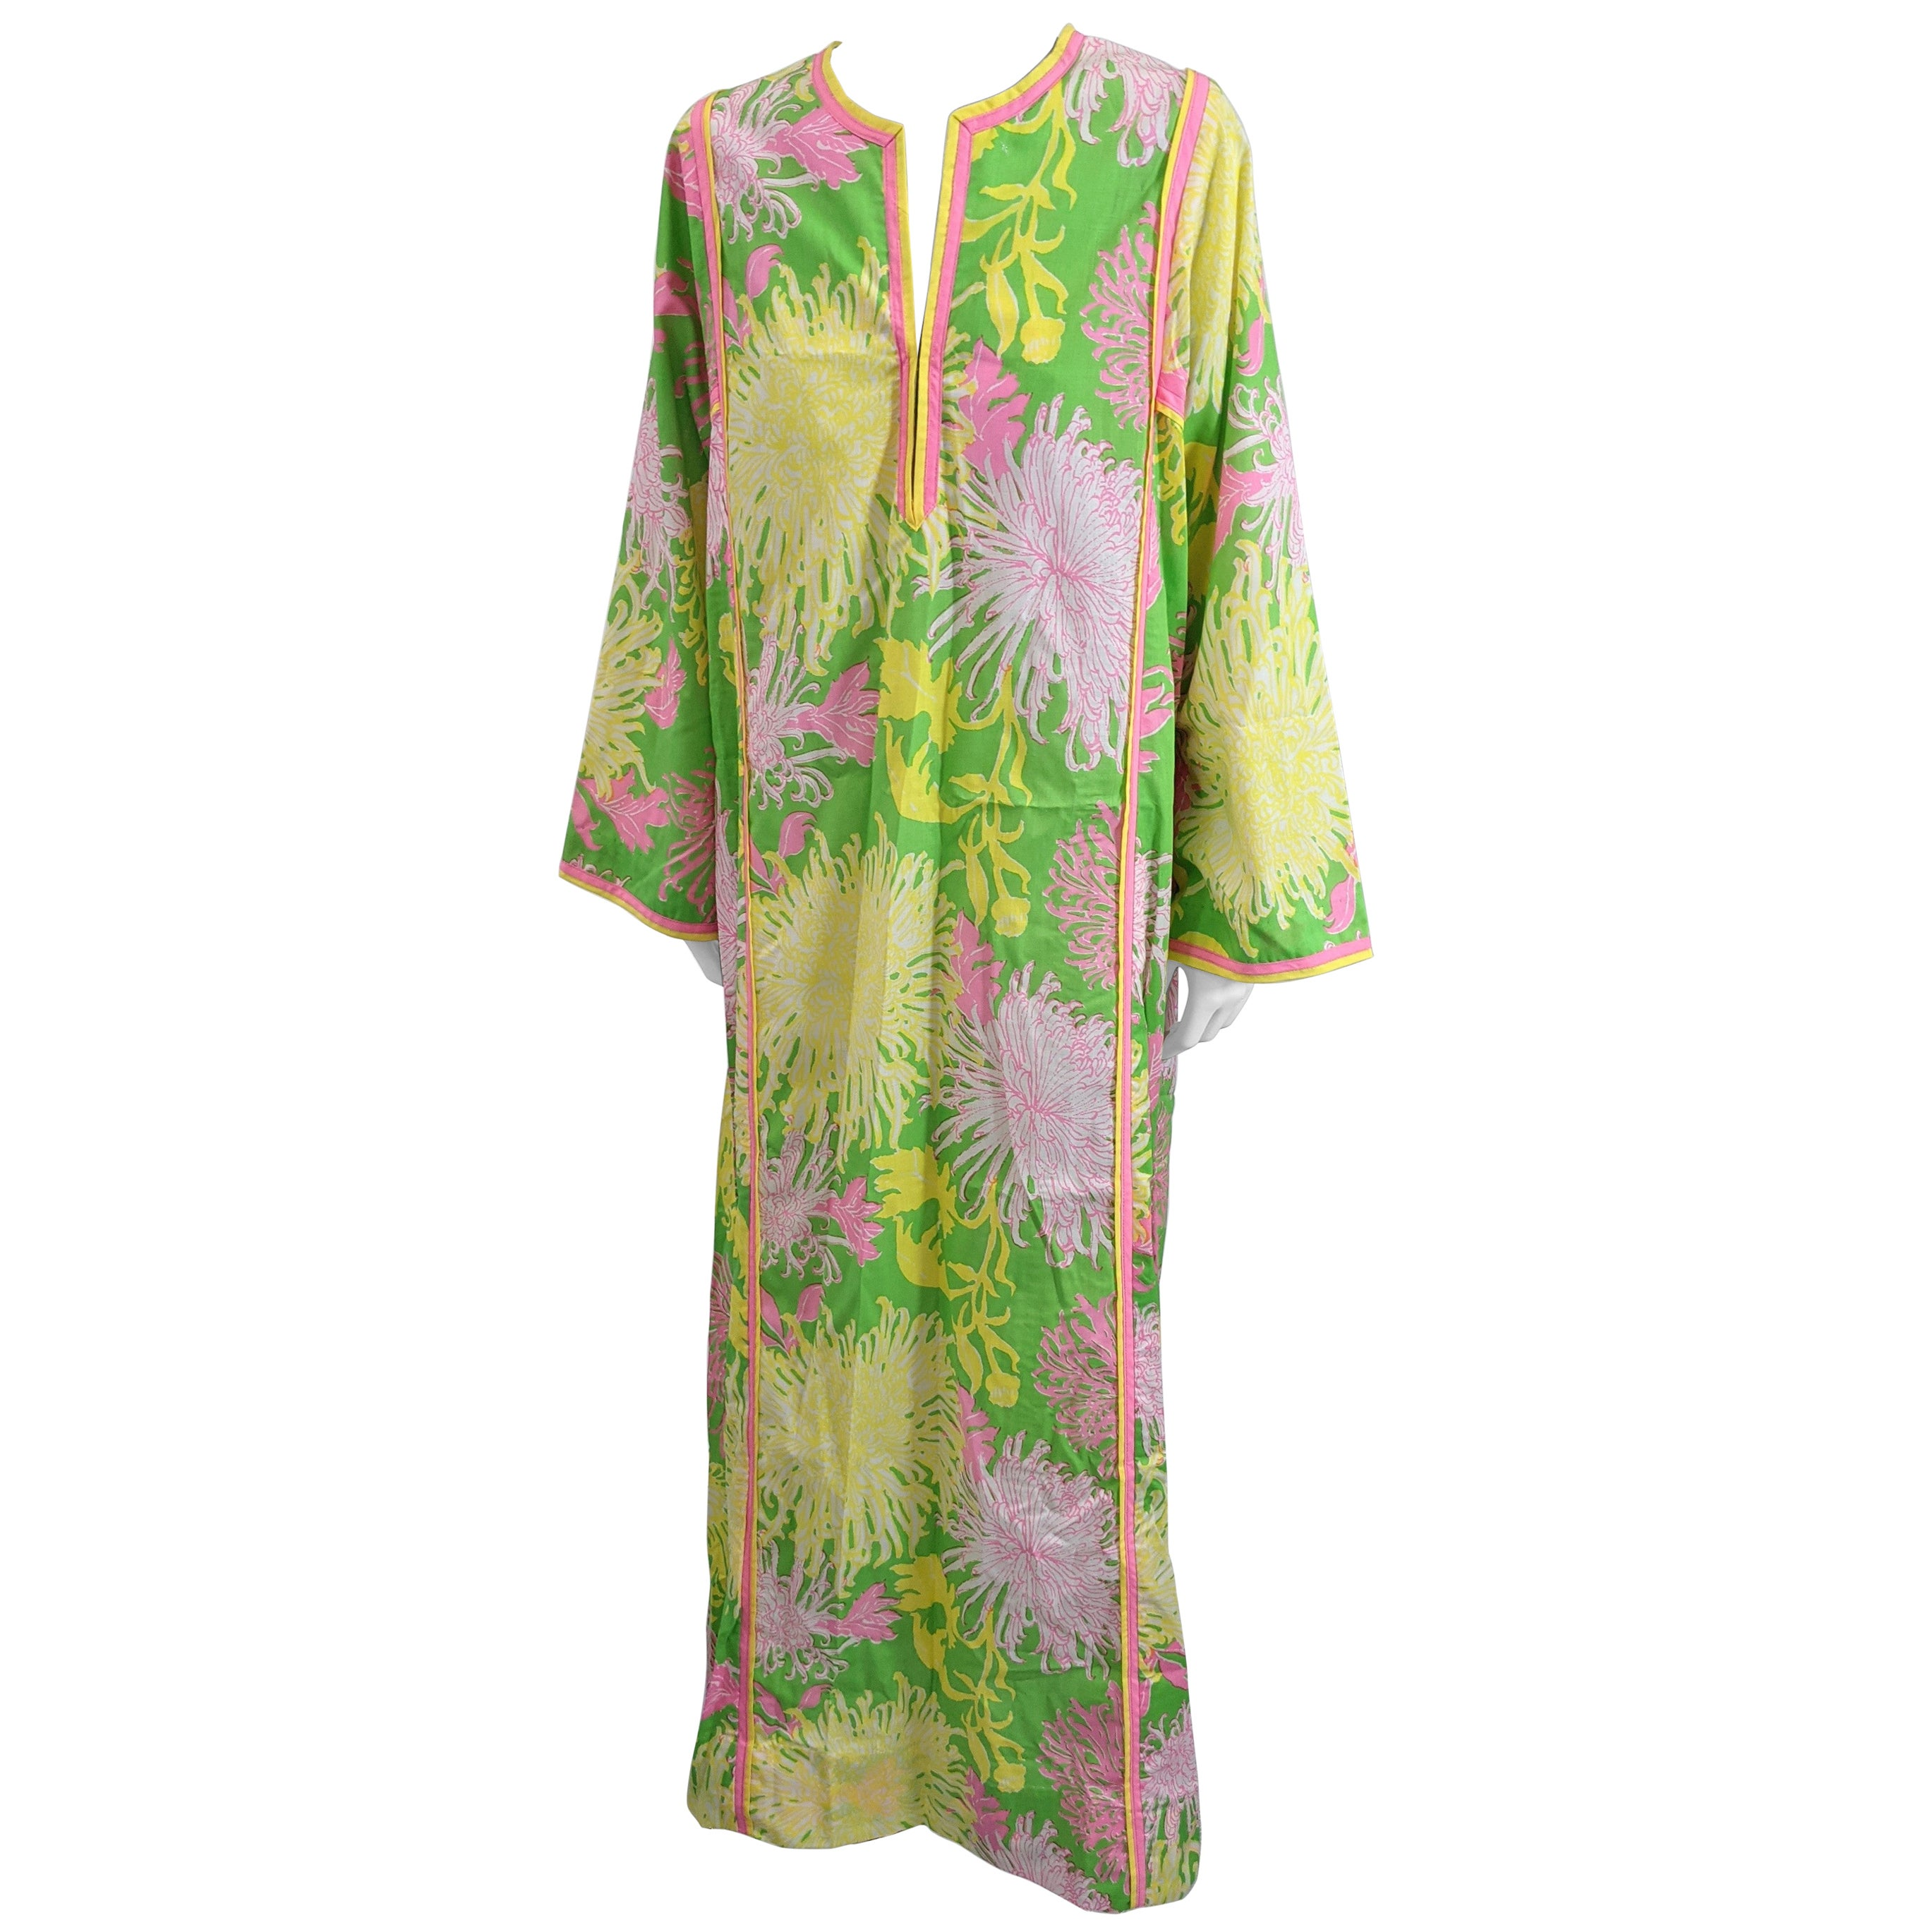 Lilly Pulitzer Floral Print Caftan